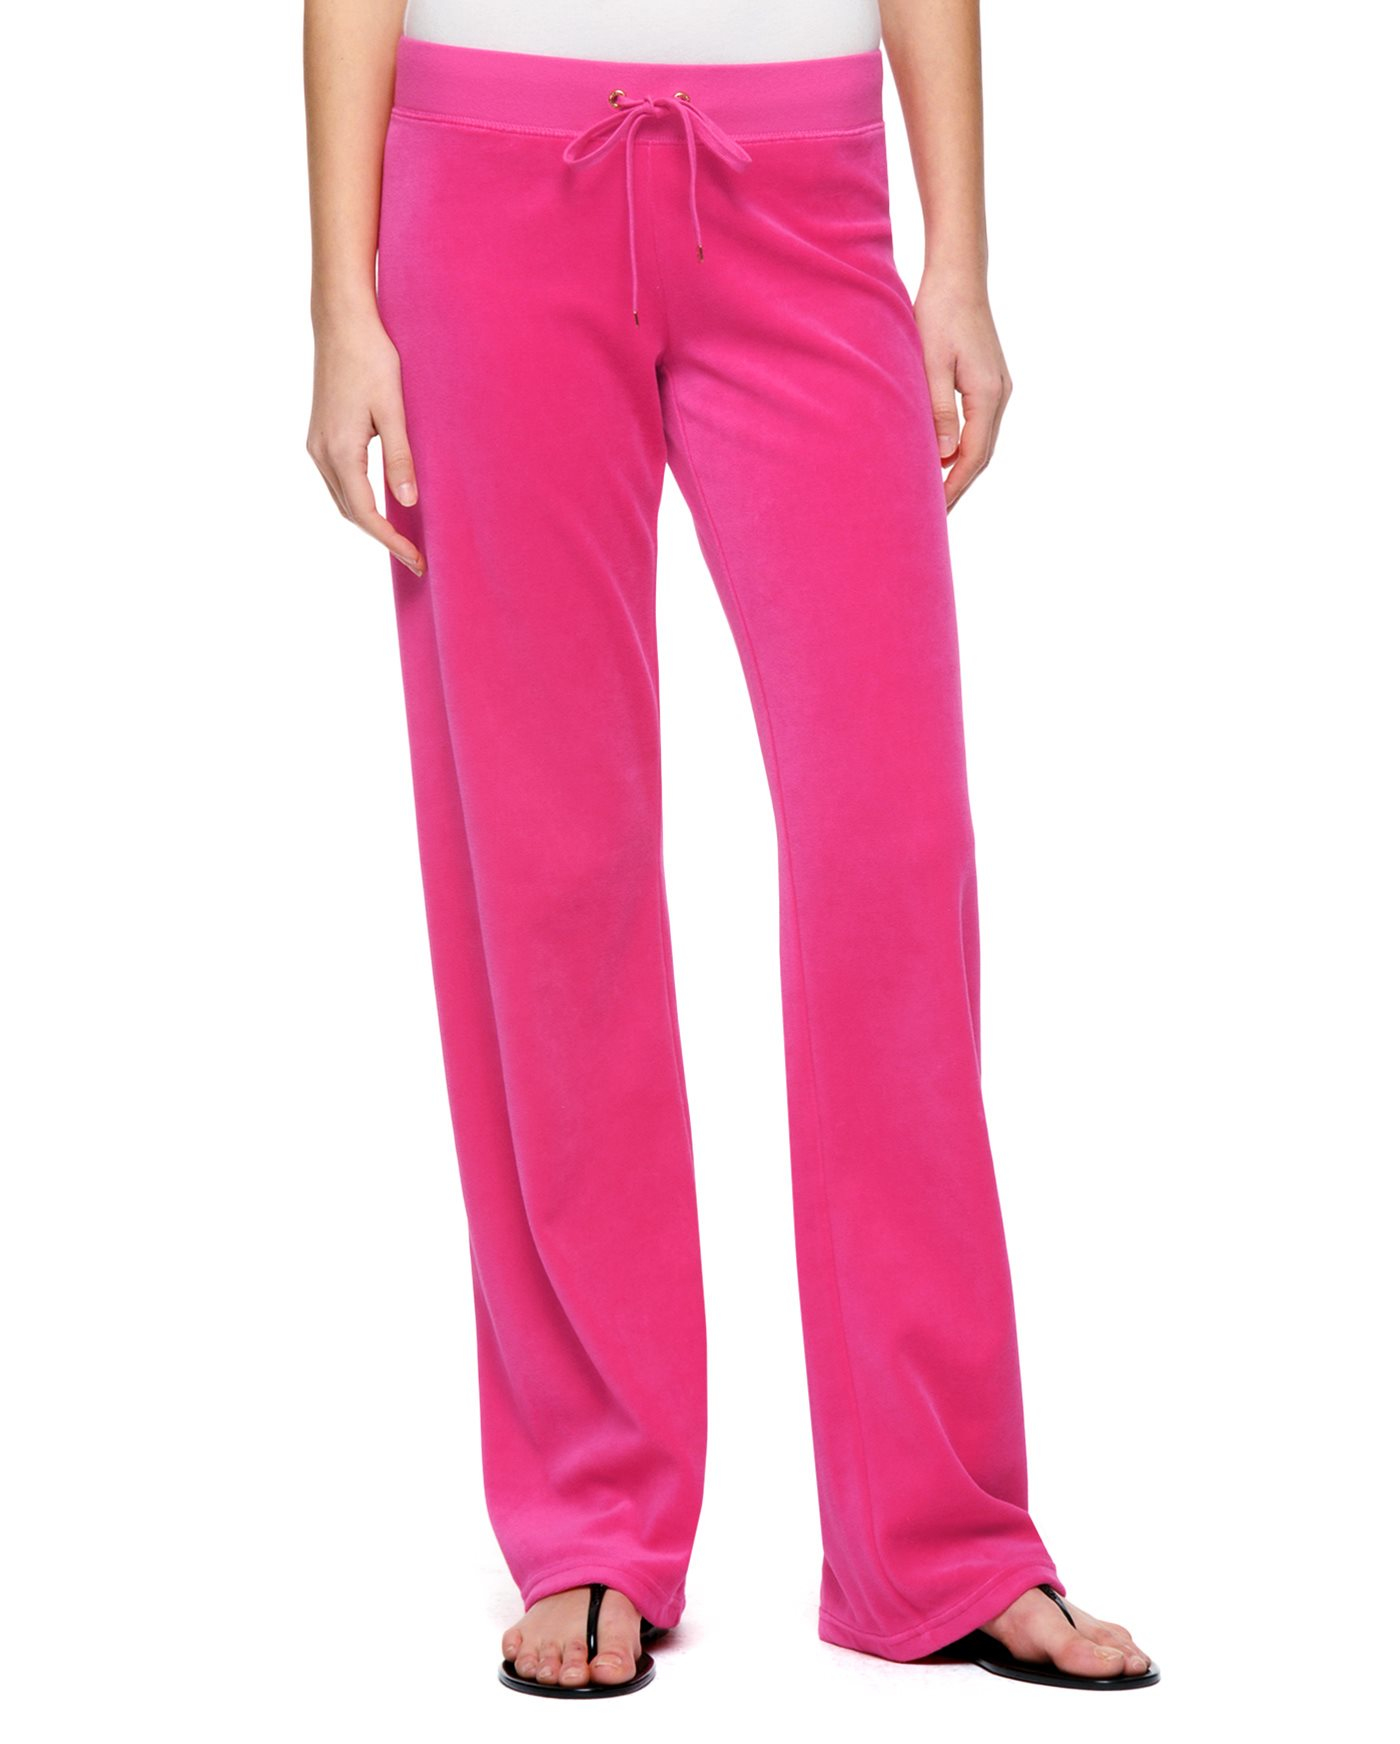 Shop for Corded velour pants Women's Pants at Shopzilla. Buy Clothing & Accessories online and read professional reviews on Corded velour pants Women's Pants. .